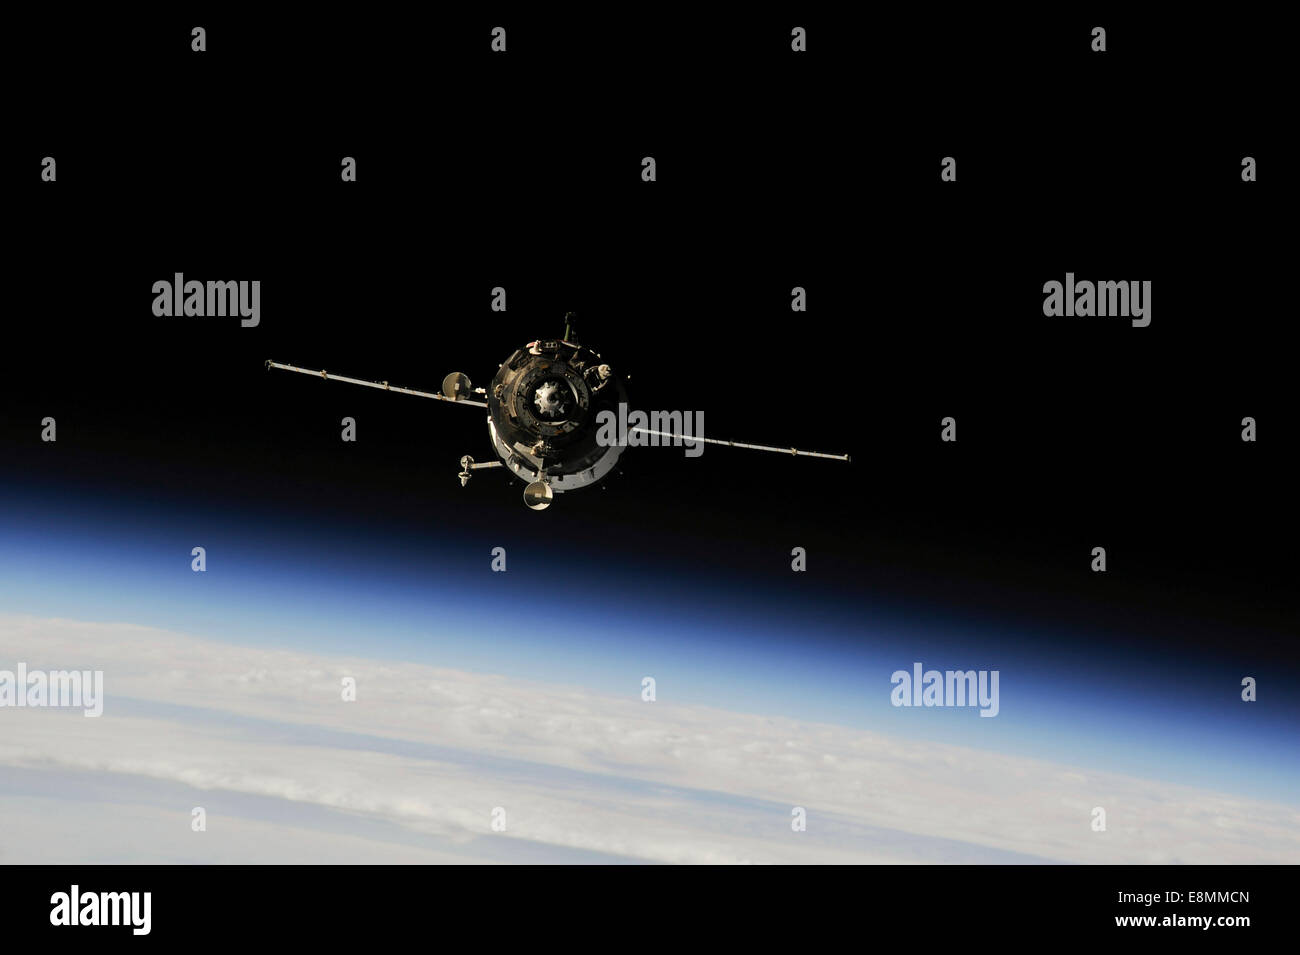 September 25, 2013 - The Soyuz TMA-10M above Earth's limb. - Stock Image